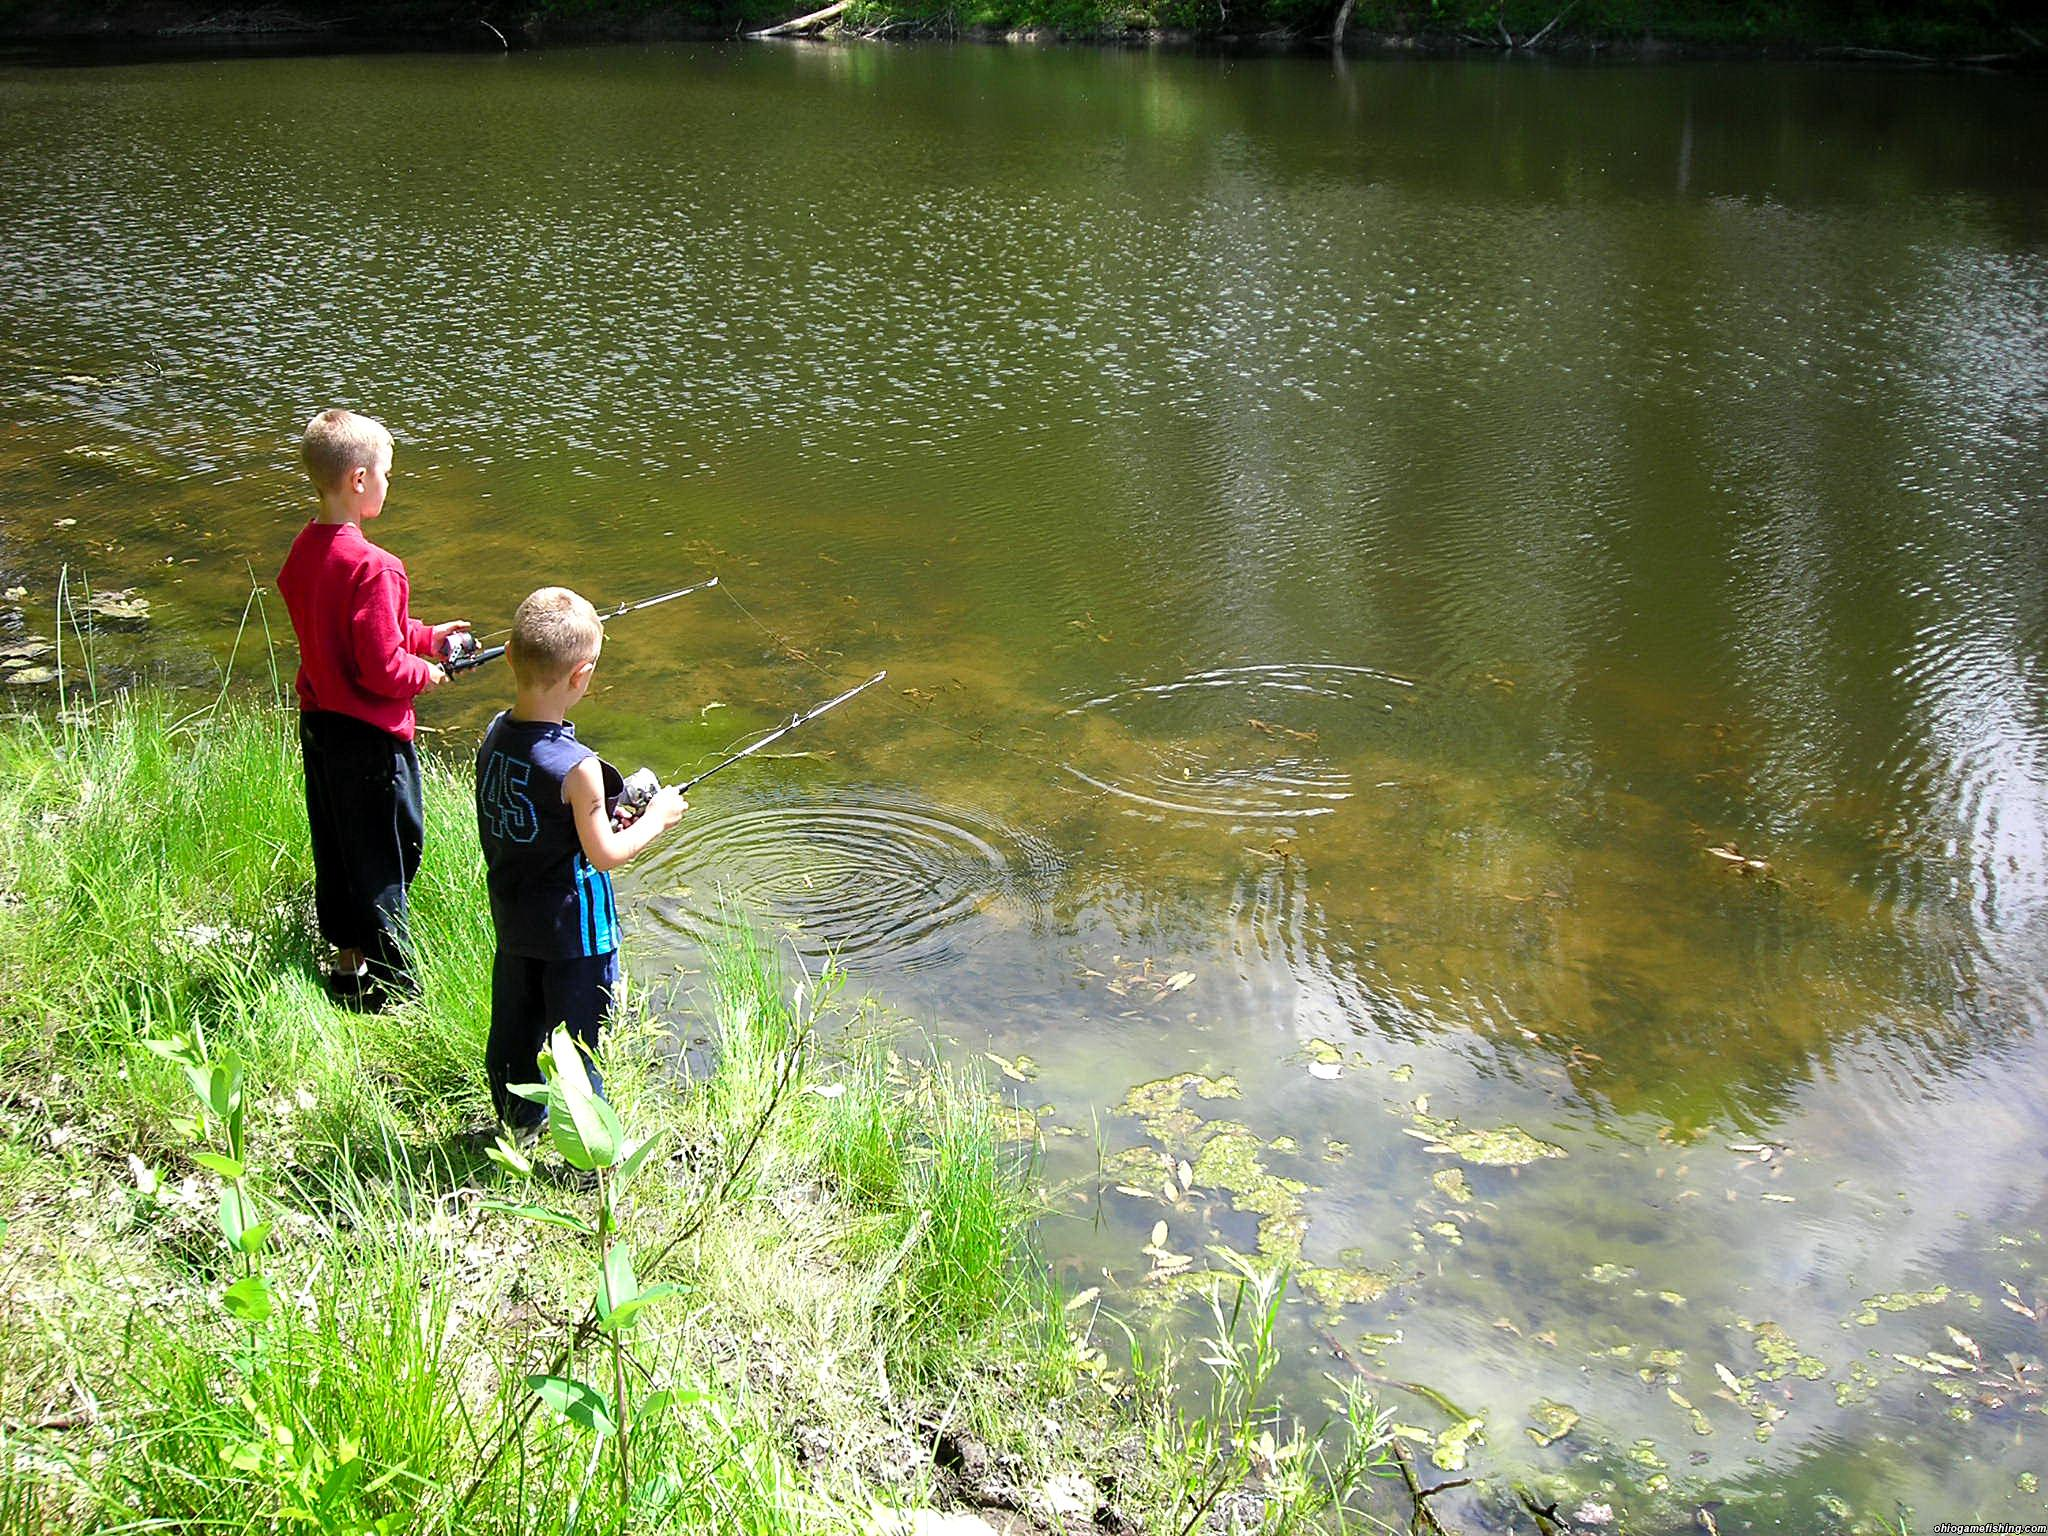 Armington pond 6 11 06 ohio game fishing your ohio for Big fish in a small pond game